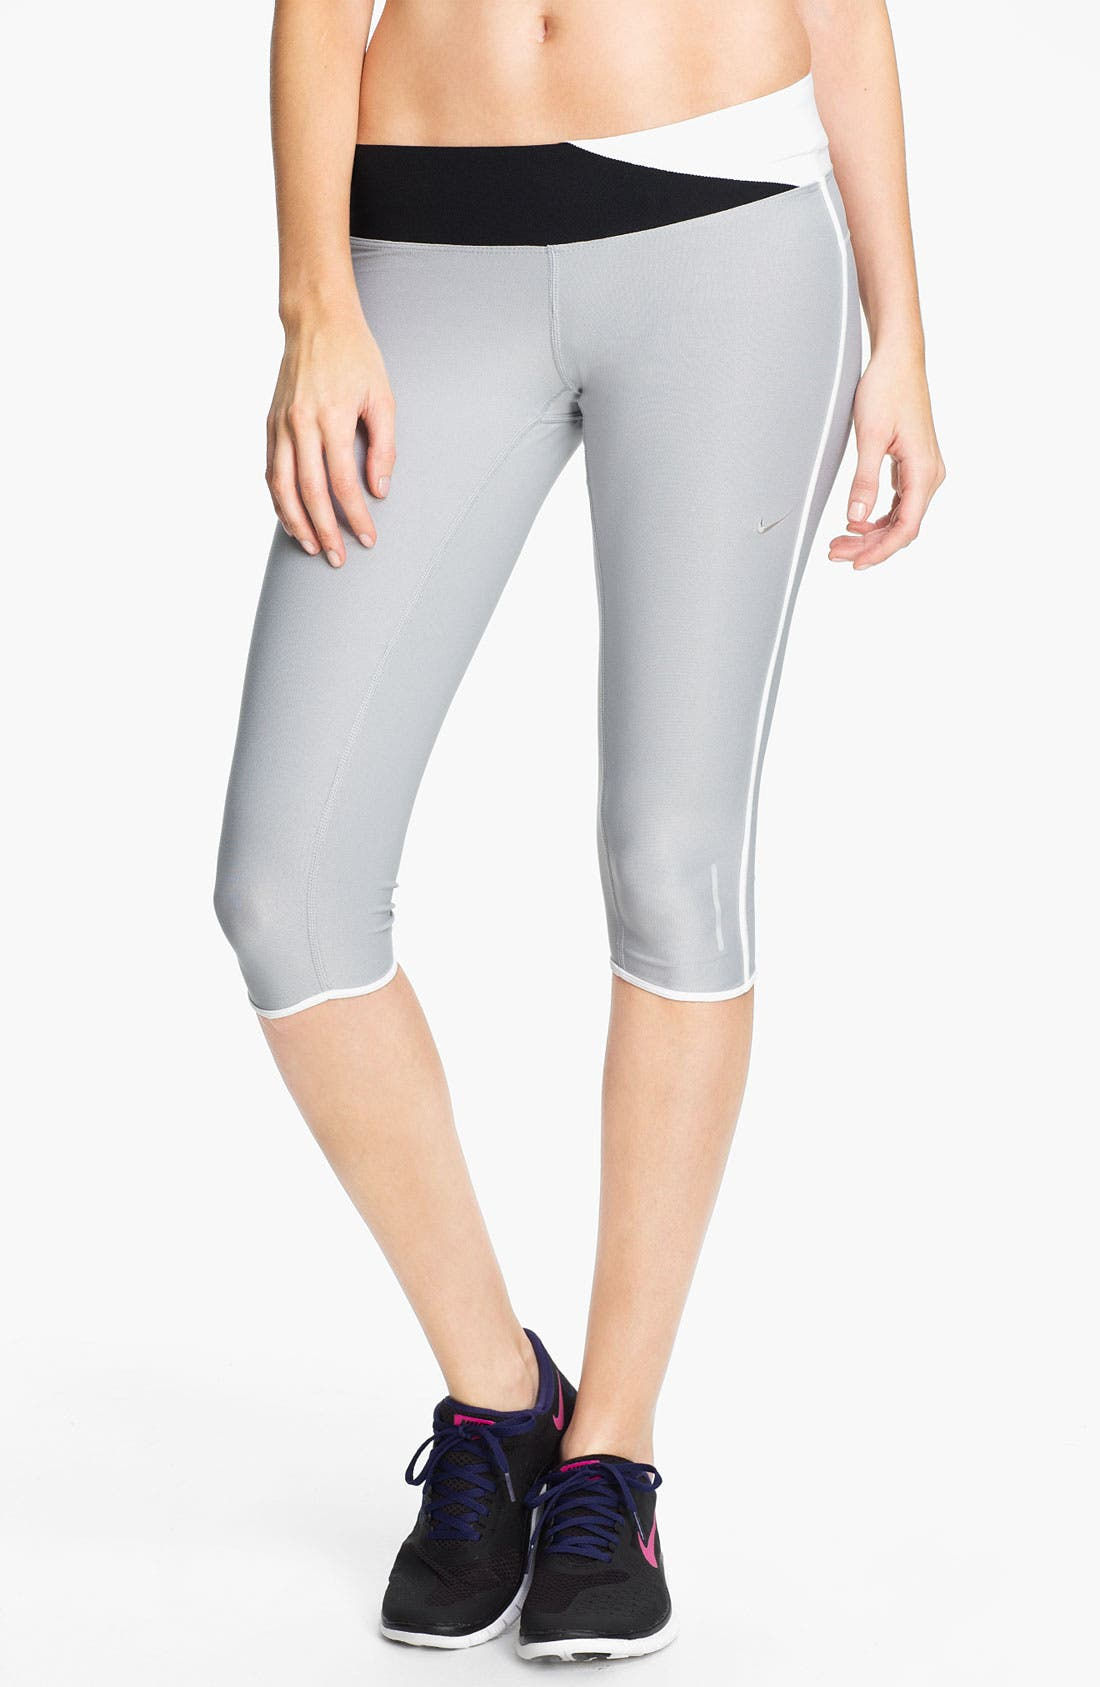 Alternate Image 1 Selected - Nike 'Twisted' Running Capris